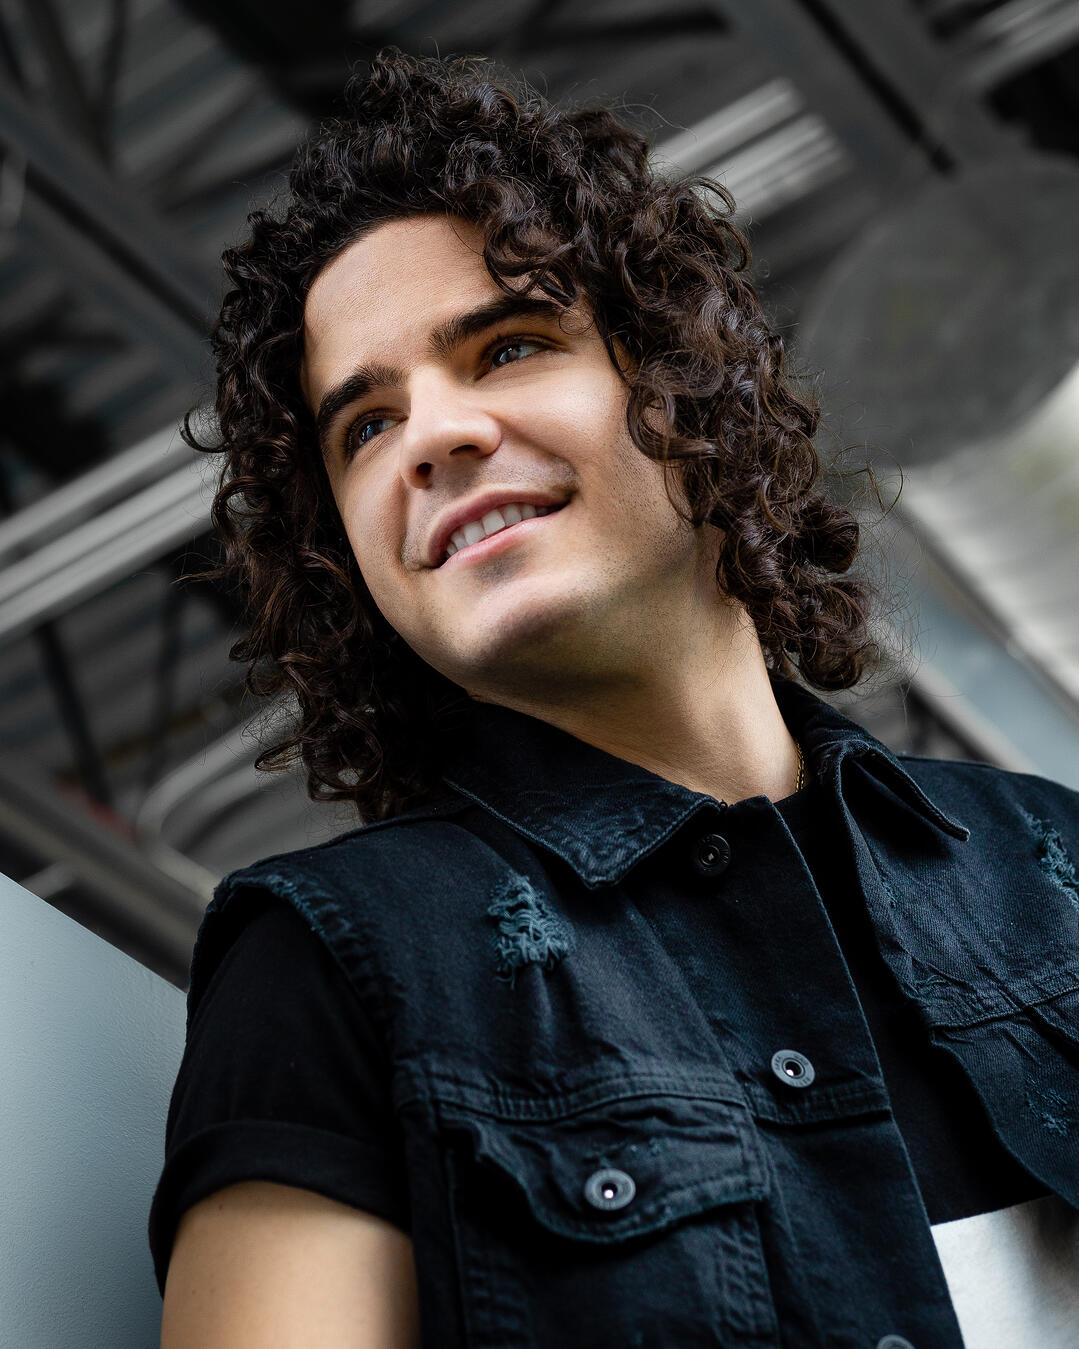 OneShare Health Care Sharing Ministry Introduces Latin Christian Artist Johnny Rez